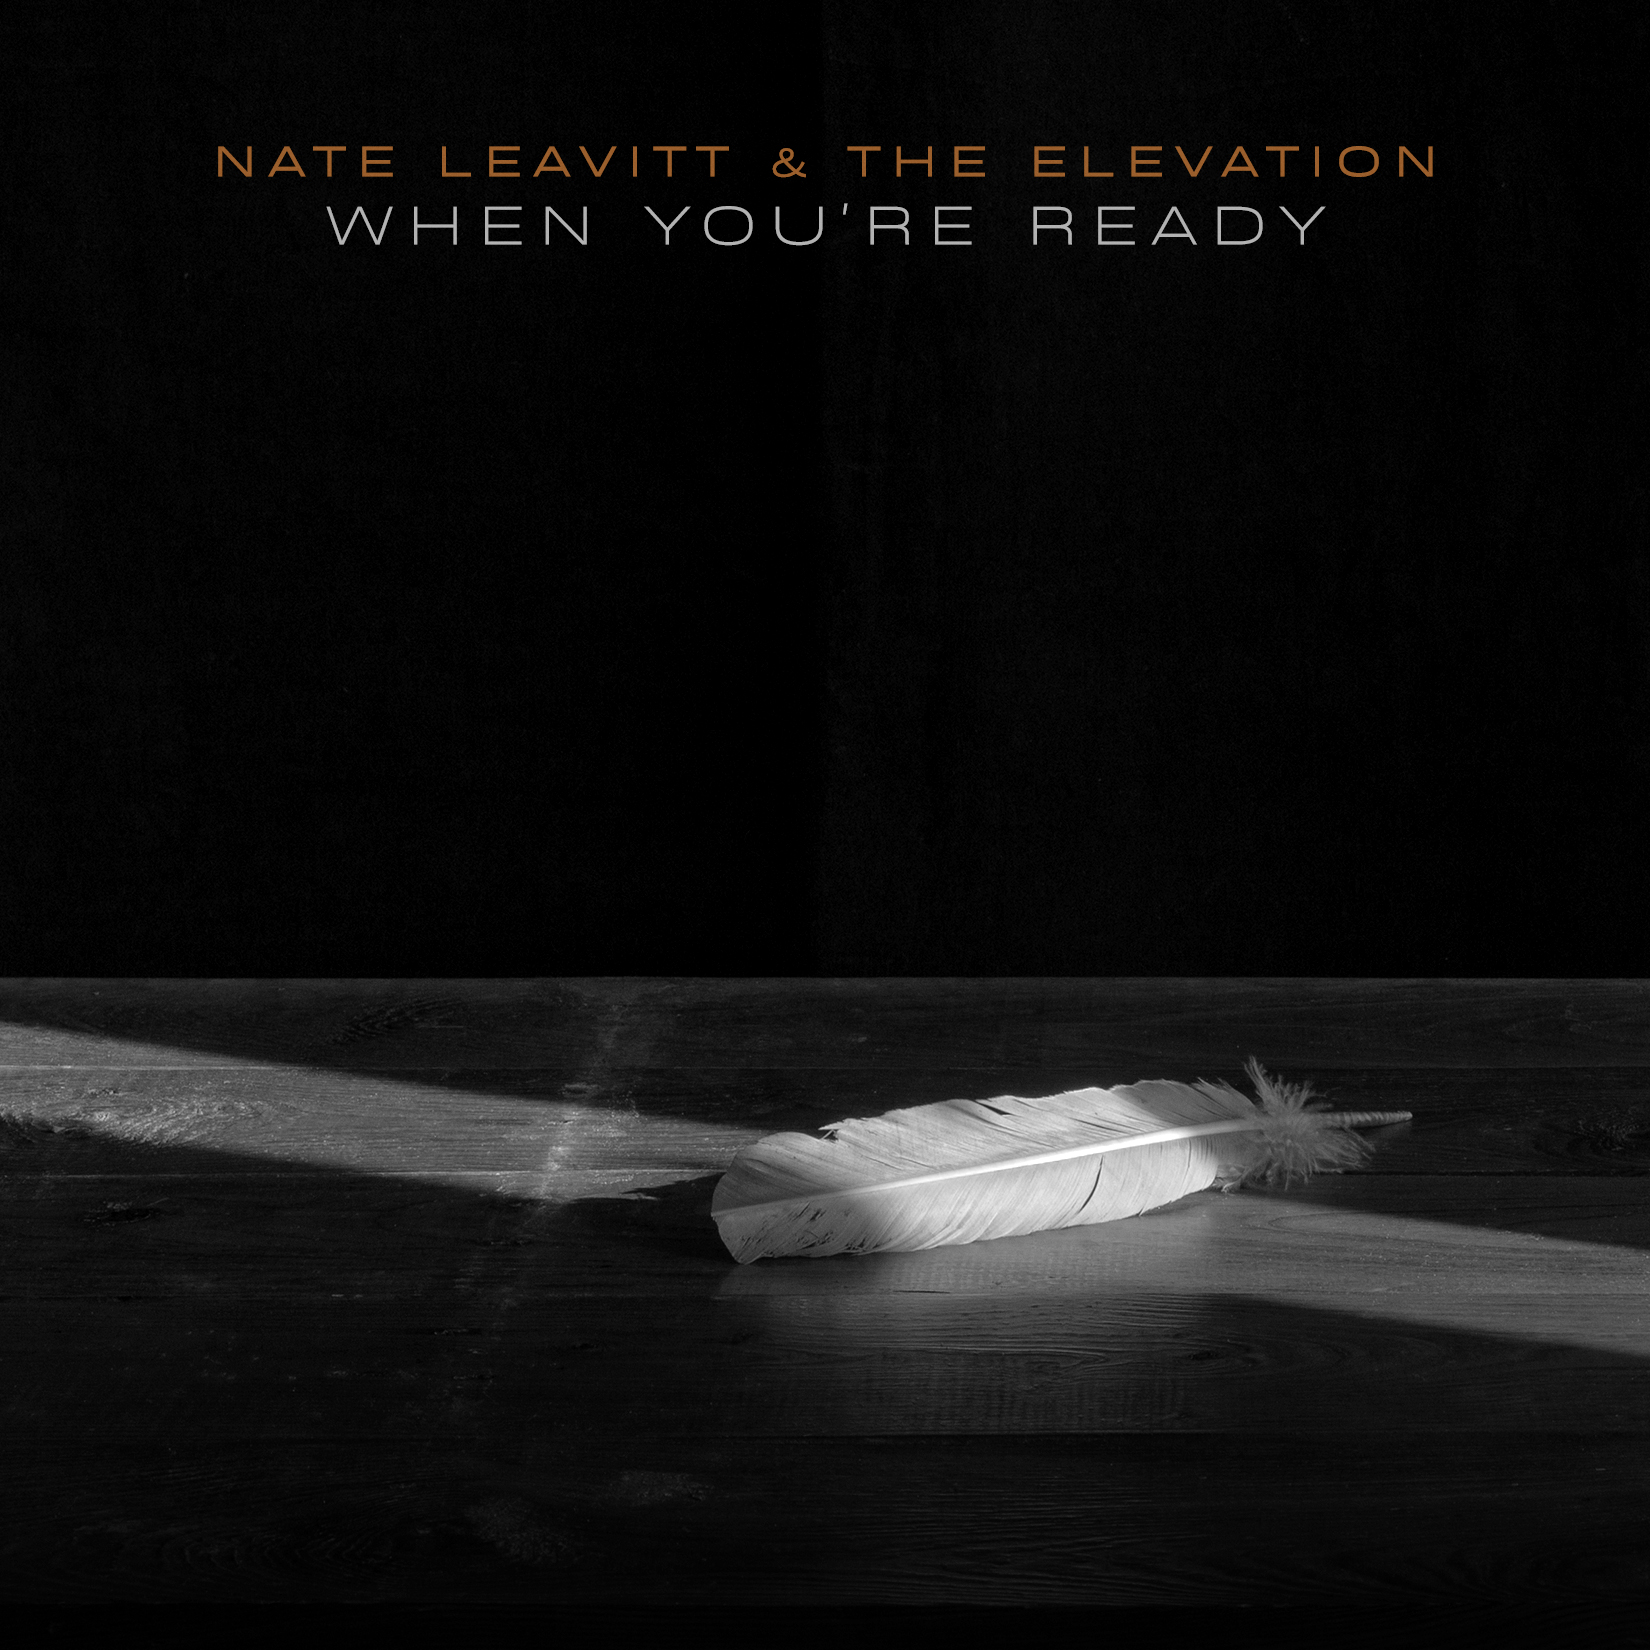 nateleavitt_single-ready1